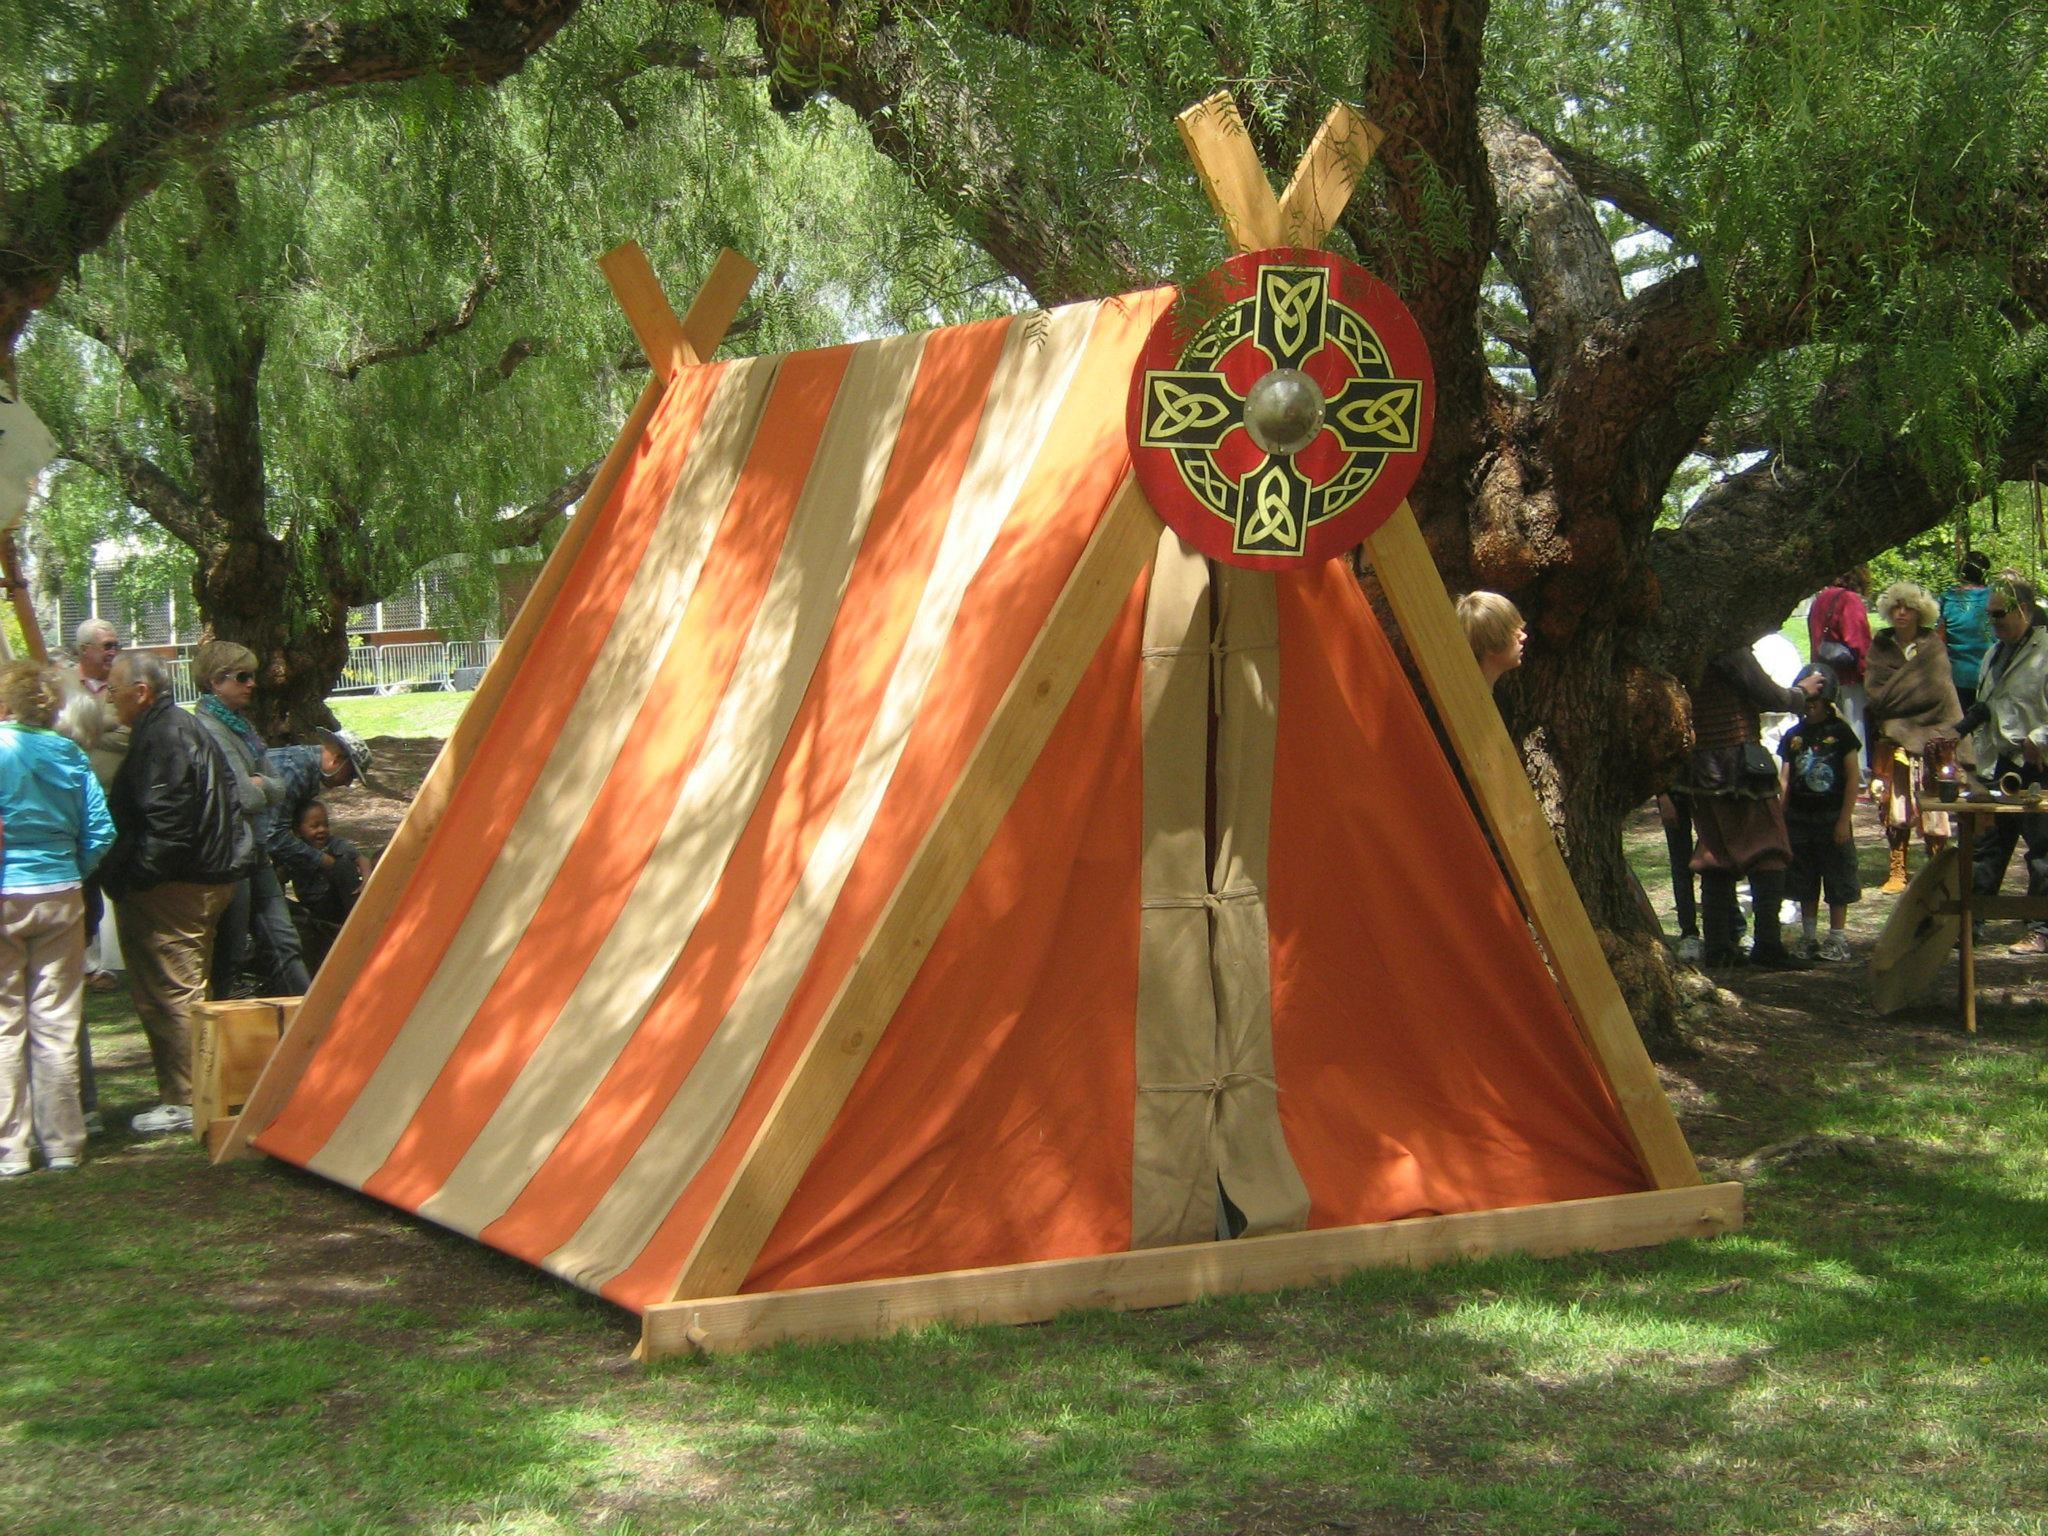 Viking Tent Plans Google Search Aakre Art Viking